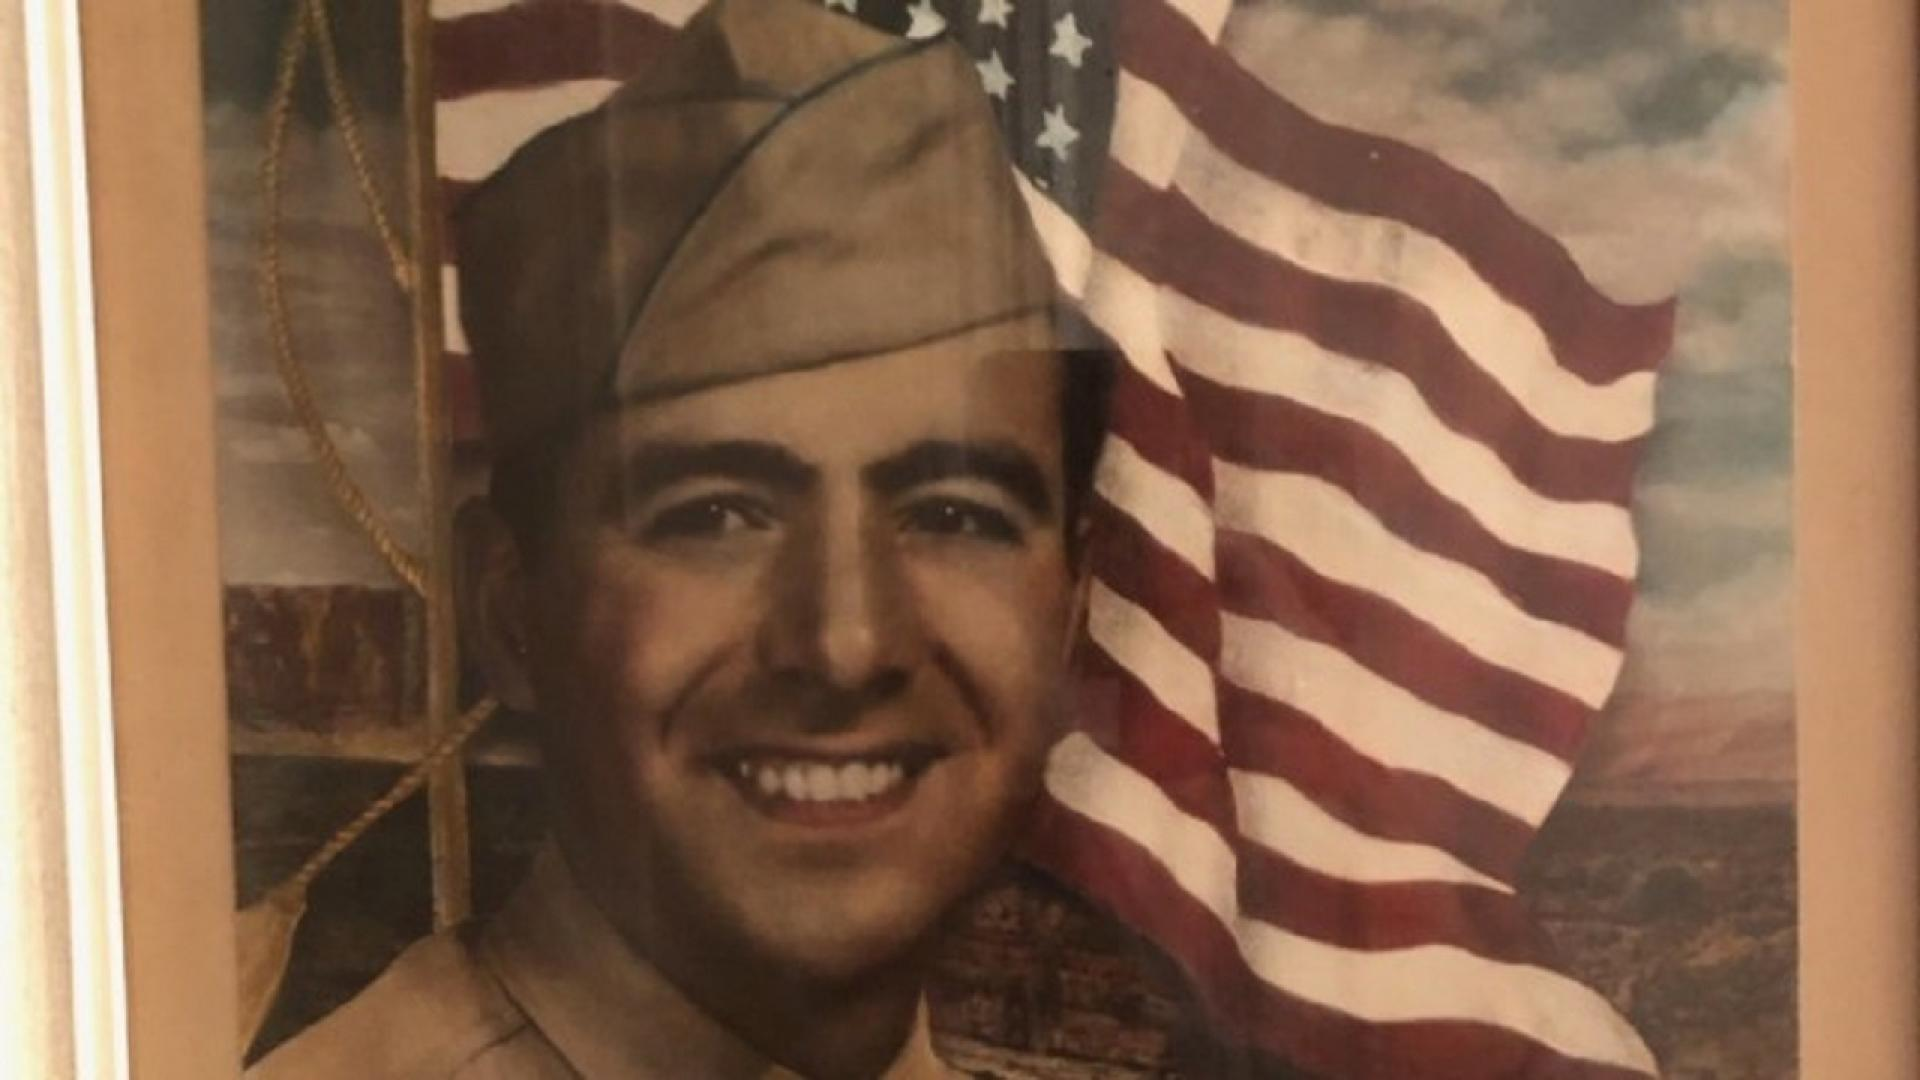 The remains of Army Staff Sgt. Louis S. Doddo, killed in a fierce WW II battle, have been identified.